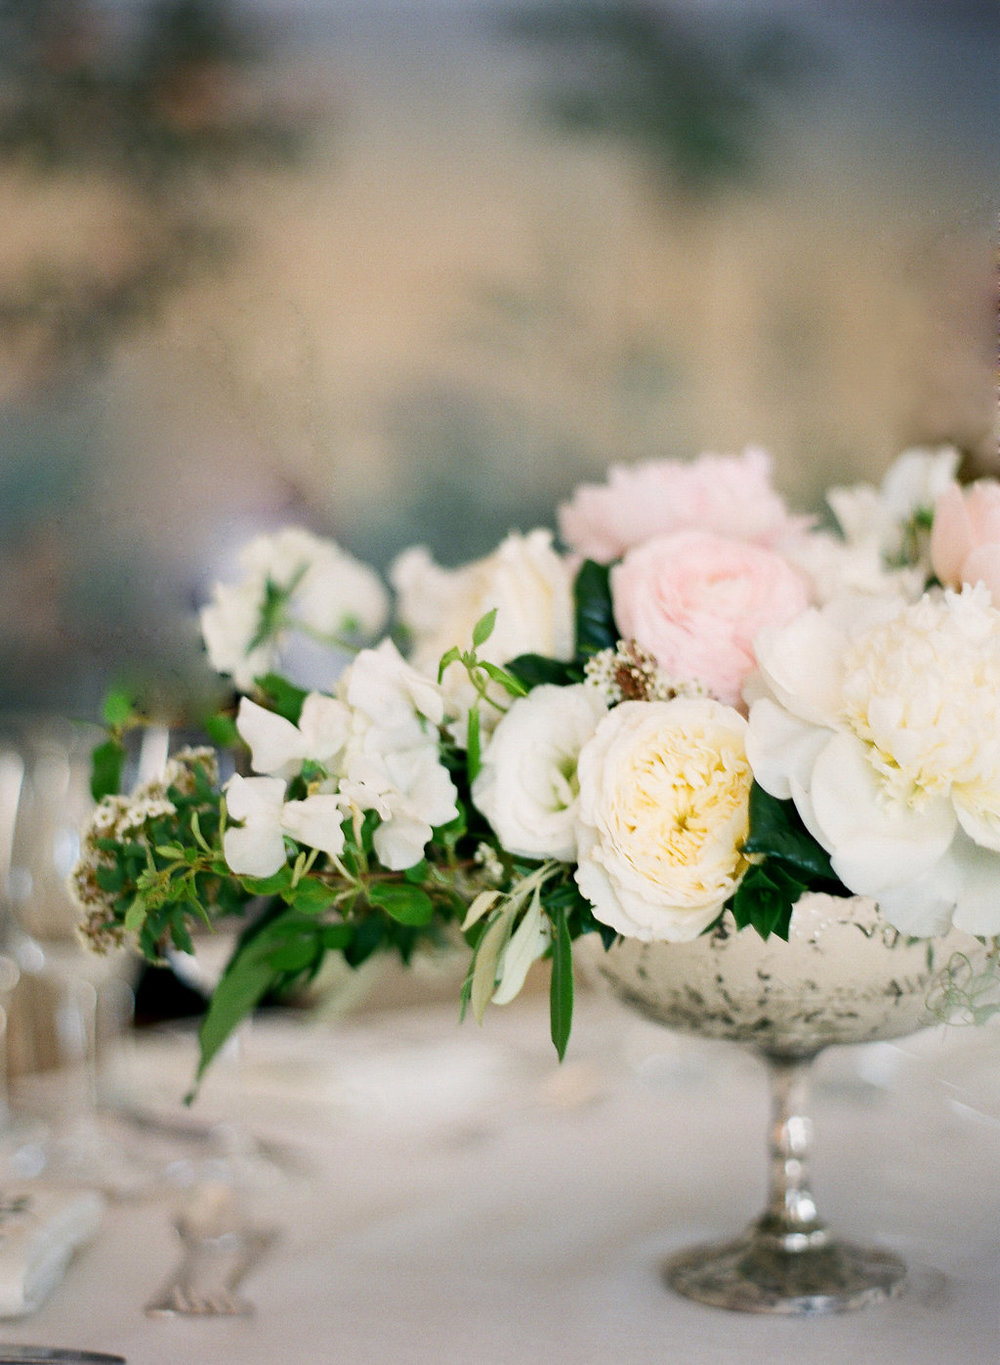 santabarbarawedding.com | Photo: Diane McGregor | Romantic Garden wedding in Montecito